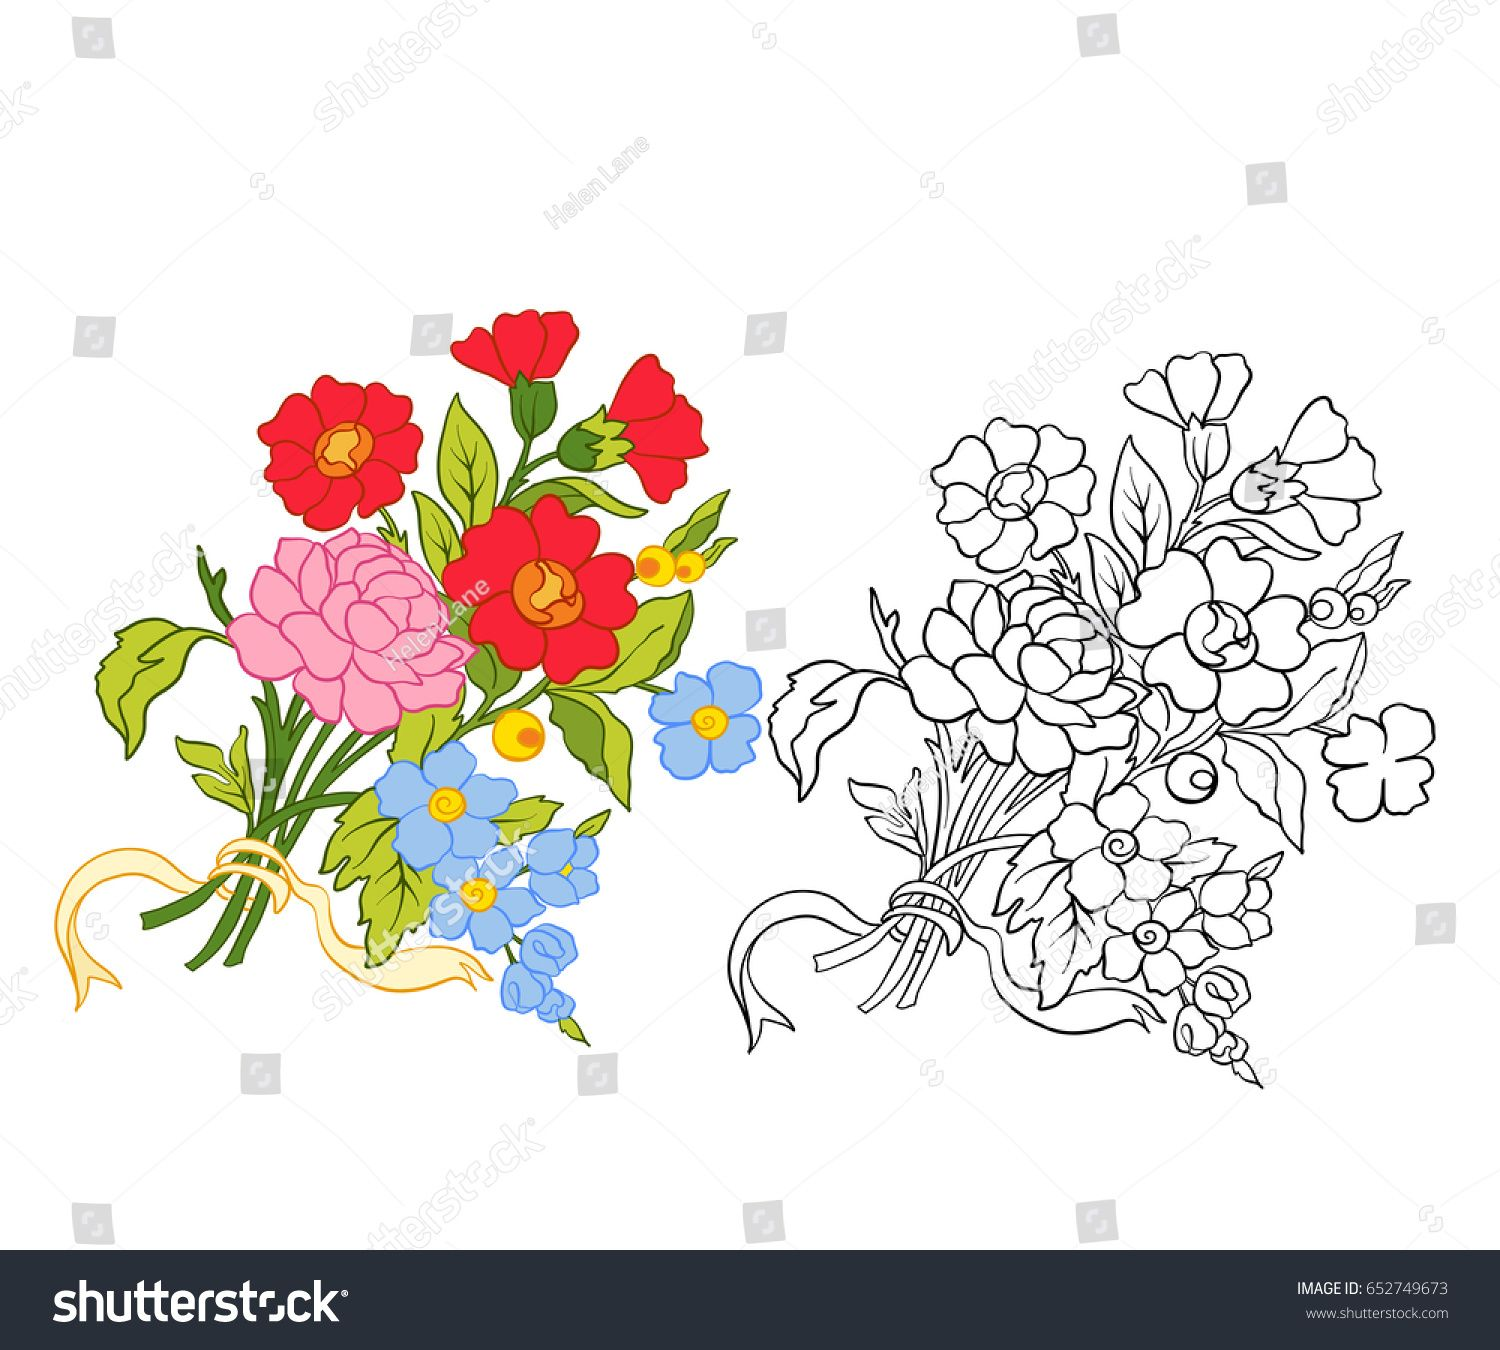 Set of outline and colored vintage flowers bouquet or pattern set of outline and colored vintage flowers bouquet or pattern izmirmasajfo